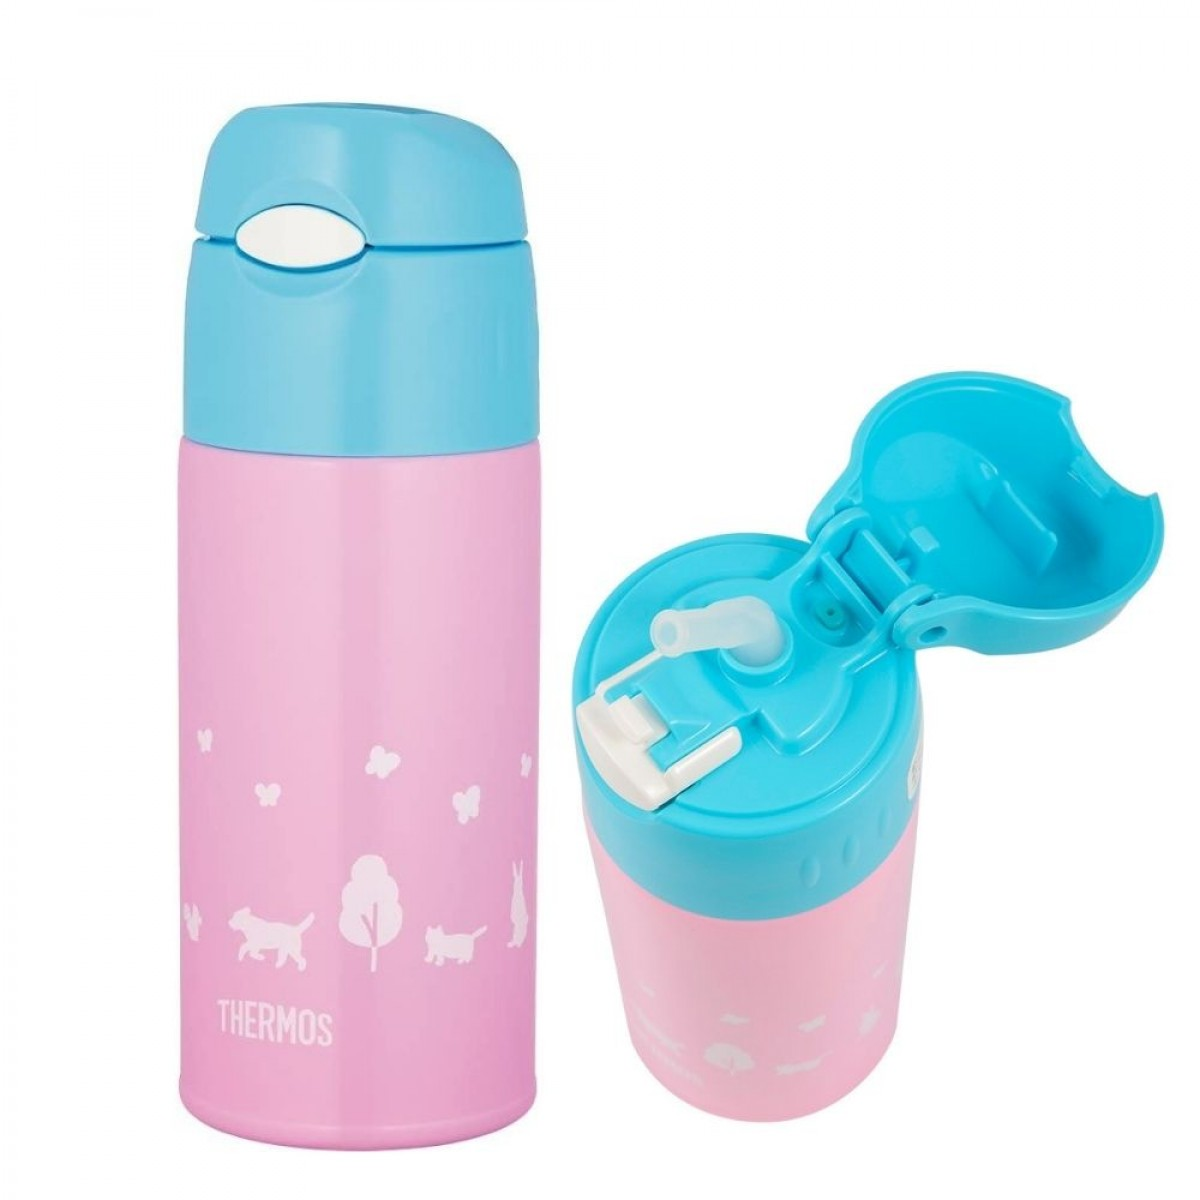 Thermos Ice Cold Bottle With Bag 400ml FREE SPARE STRAW - 5 Years Warranty from Thermos Malaysia